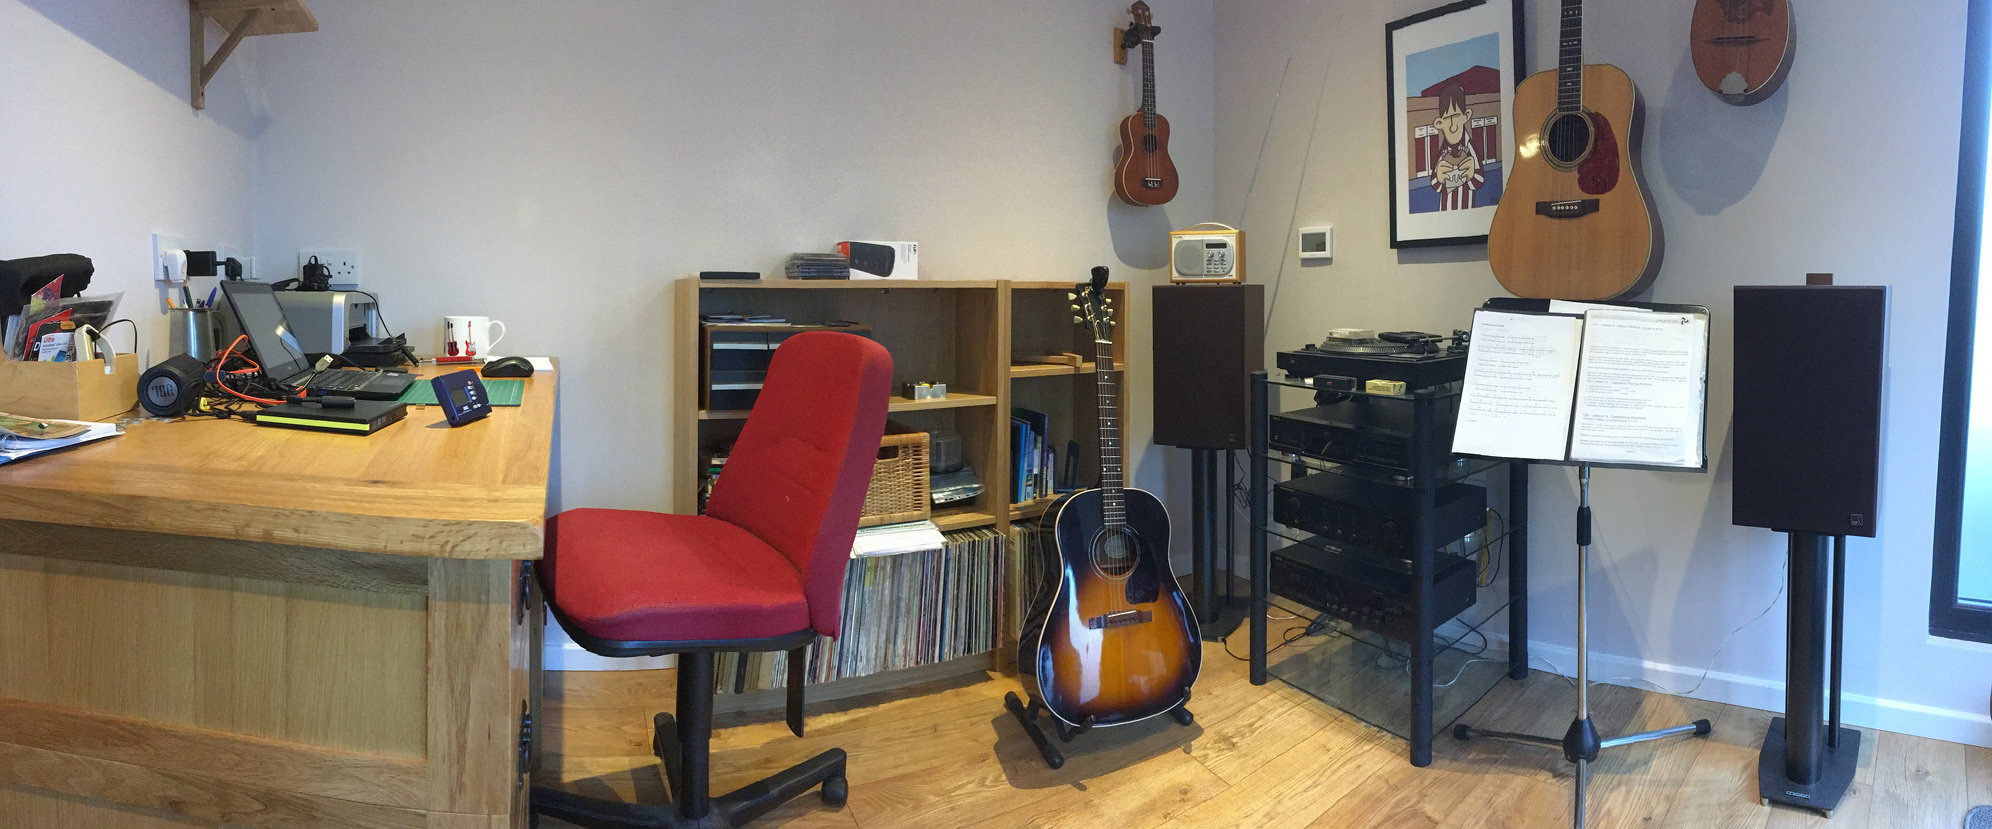 Interior of musician's room